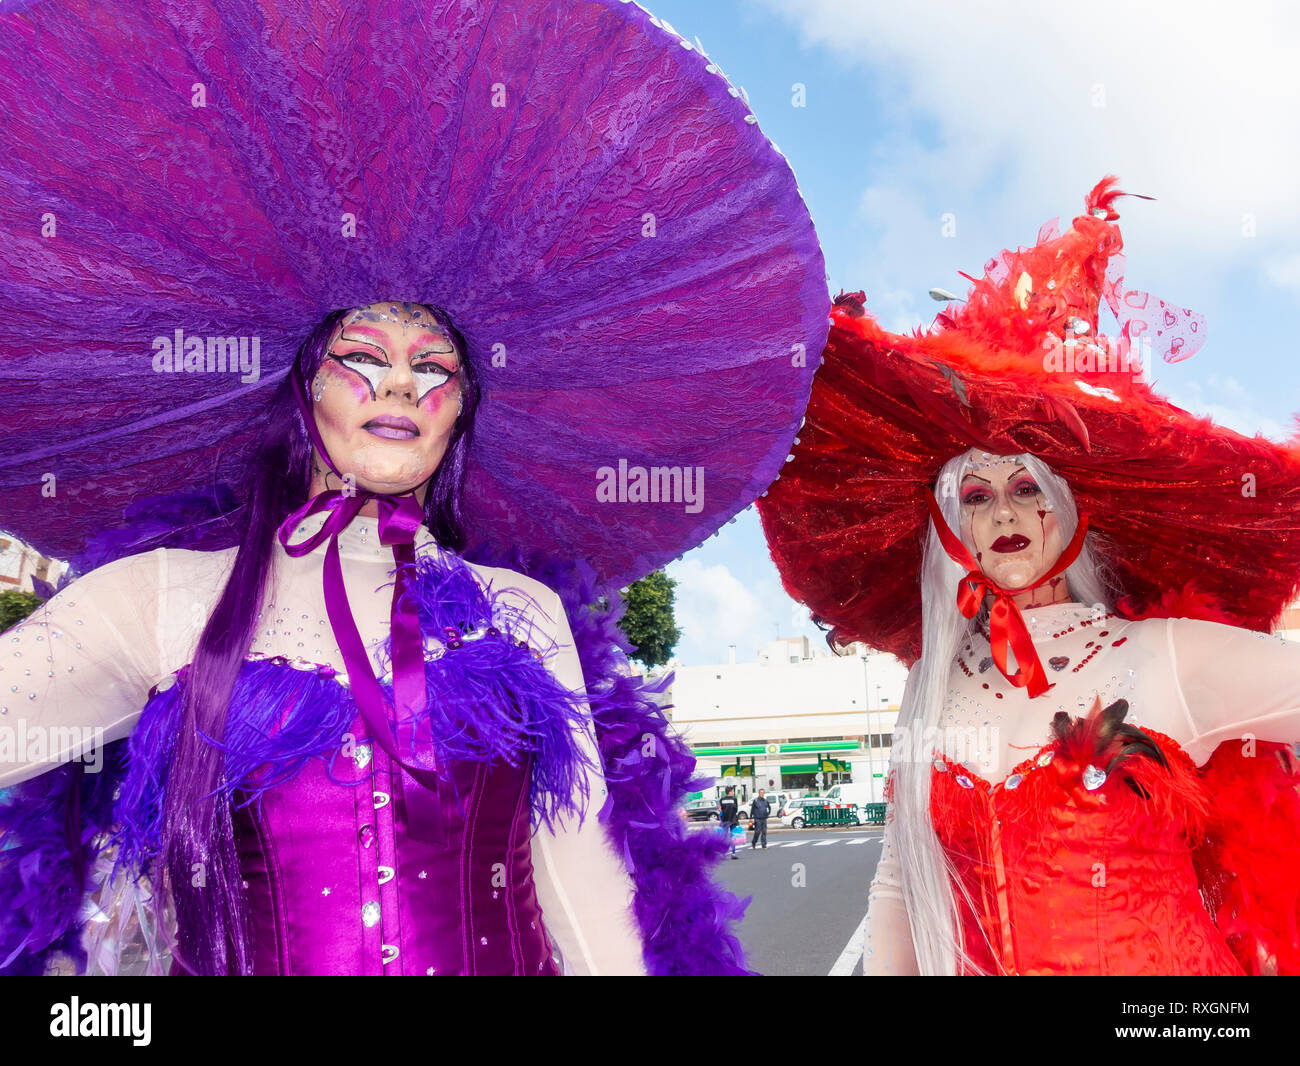 Las Palmas, Gran Canaria, Canary Islands, Spain. 9th March, 2019. The month long carnival in Las Palmas on Gran Canaria ends with a huge street parade through the city streets. Credit: ALAN DAWSON/Alamy Live News - Stock Image